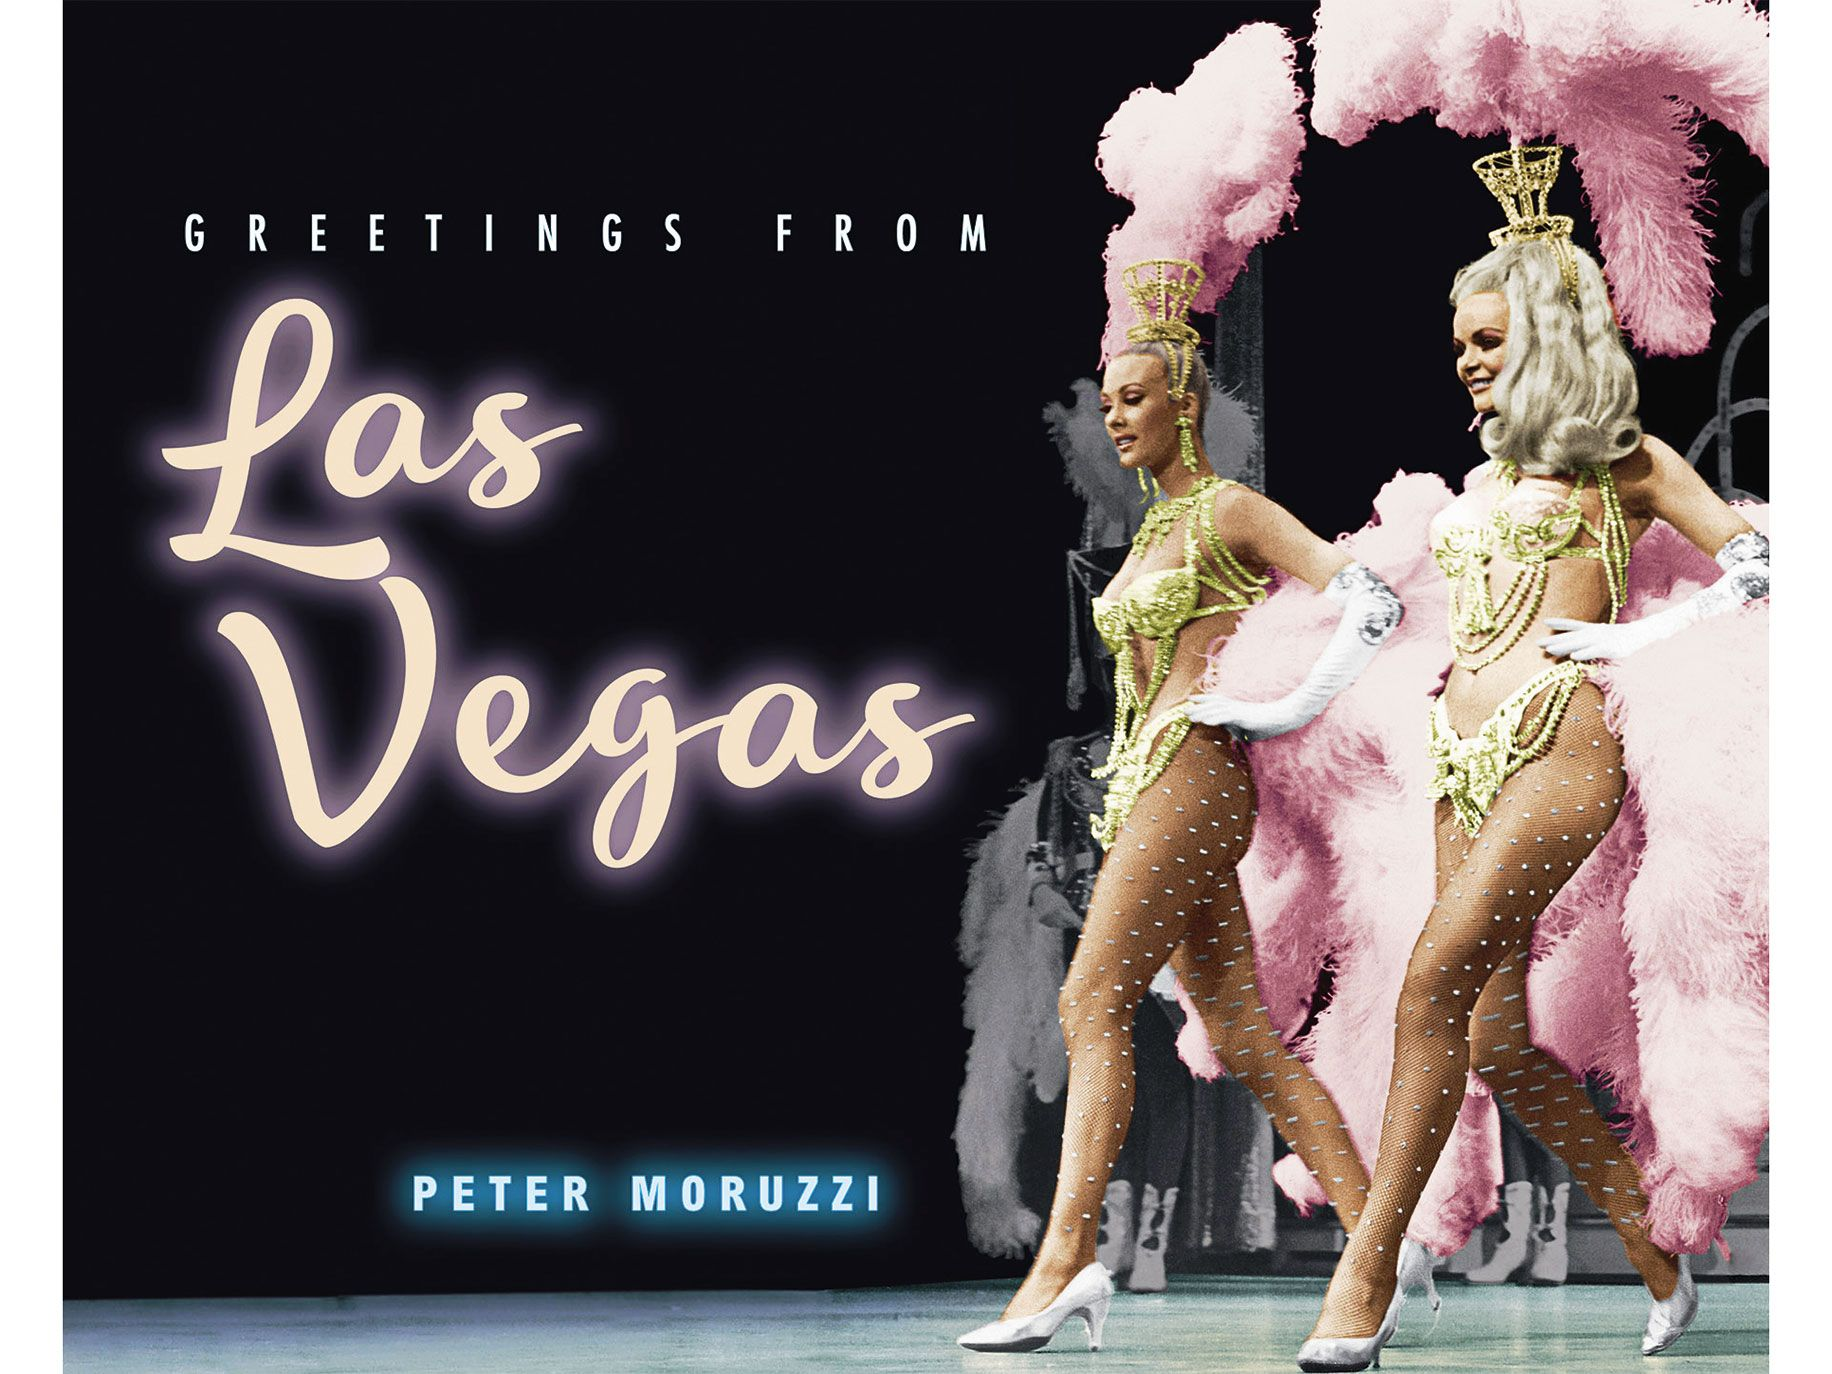 Greetings from Las Vegas, by Peter Moruzzi, Gibbs Smith, 176 pages, $30